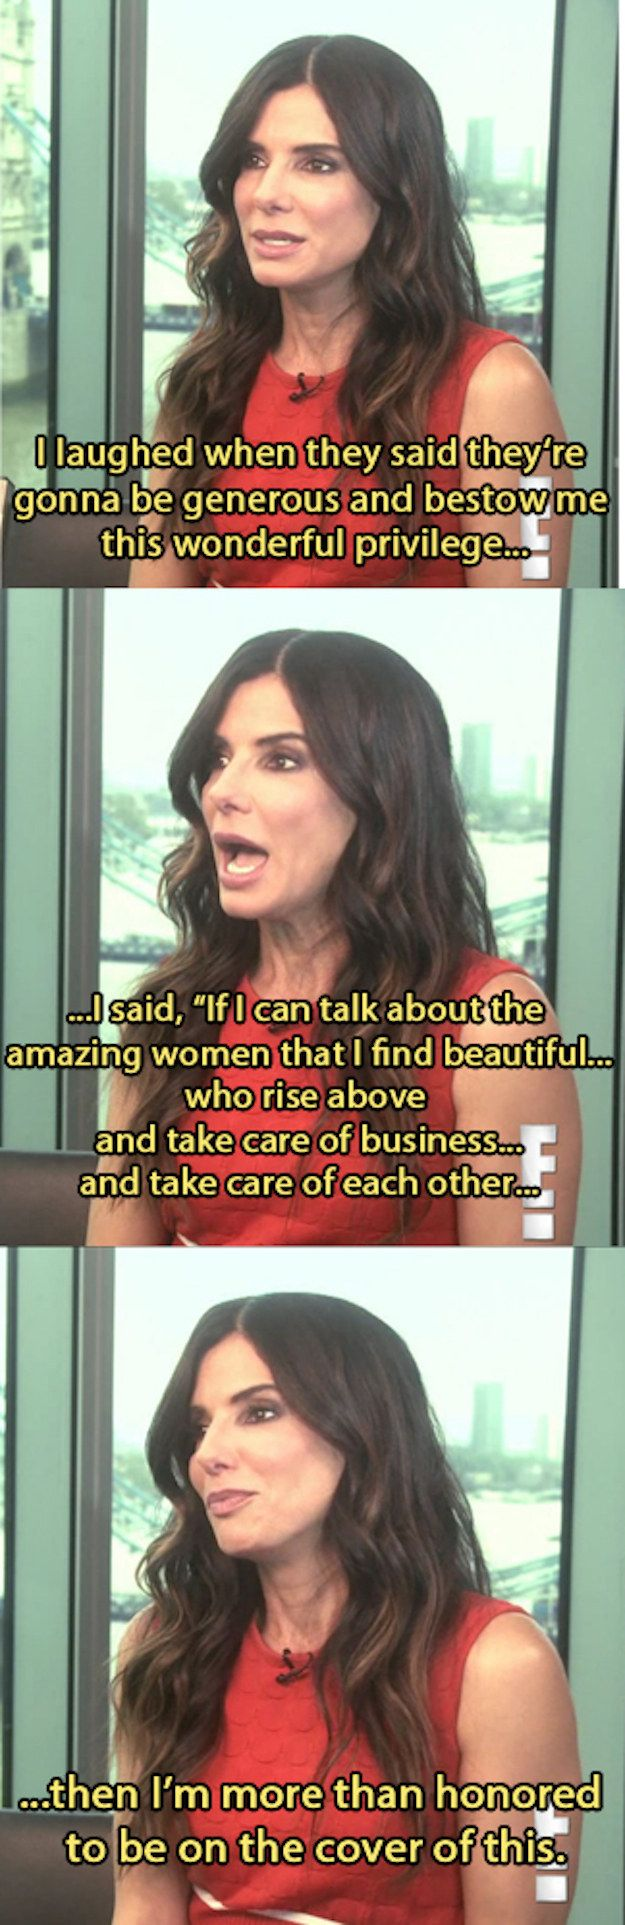 "And, ultimately, how she feels about being named ""World's Most Beautiful Woman."" 